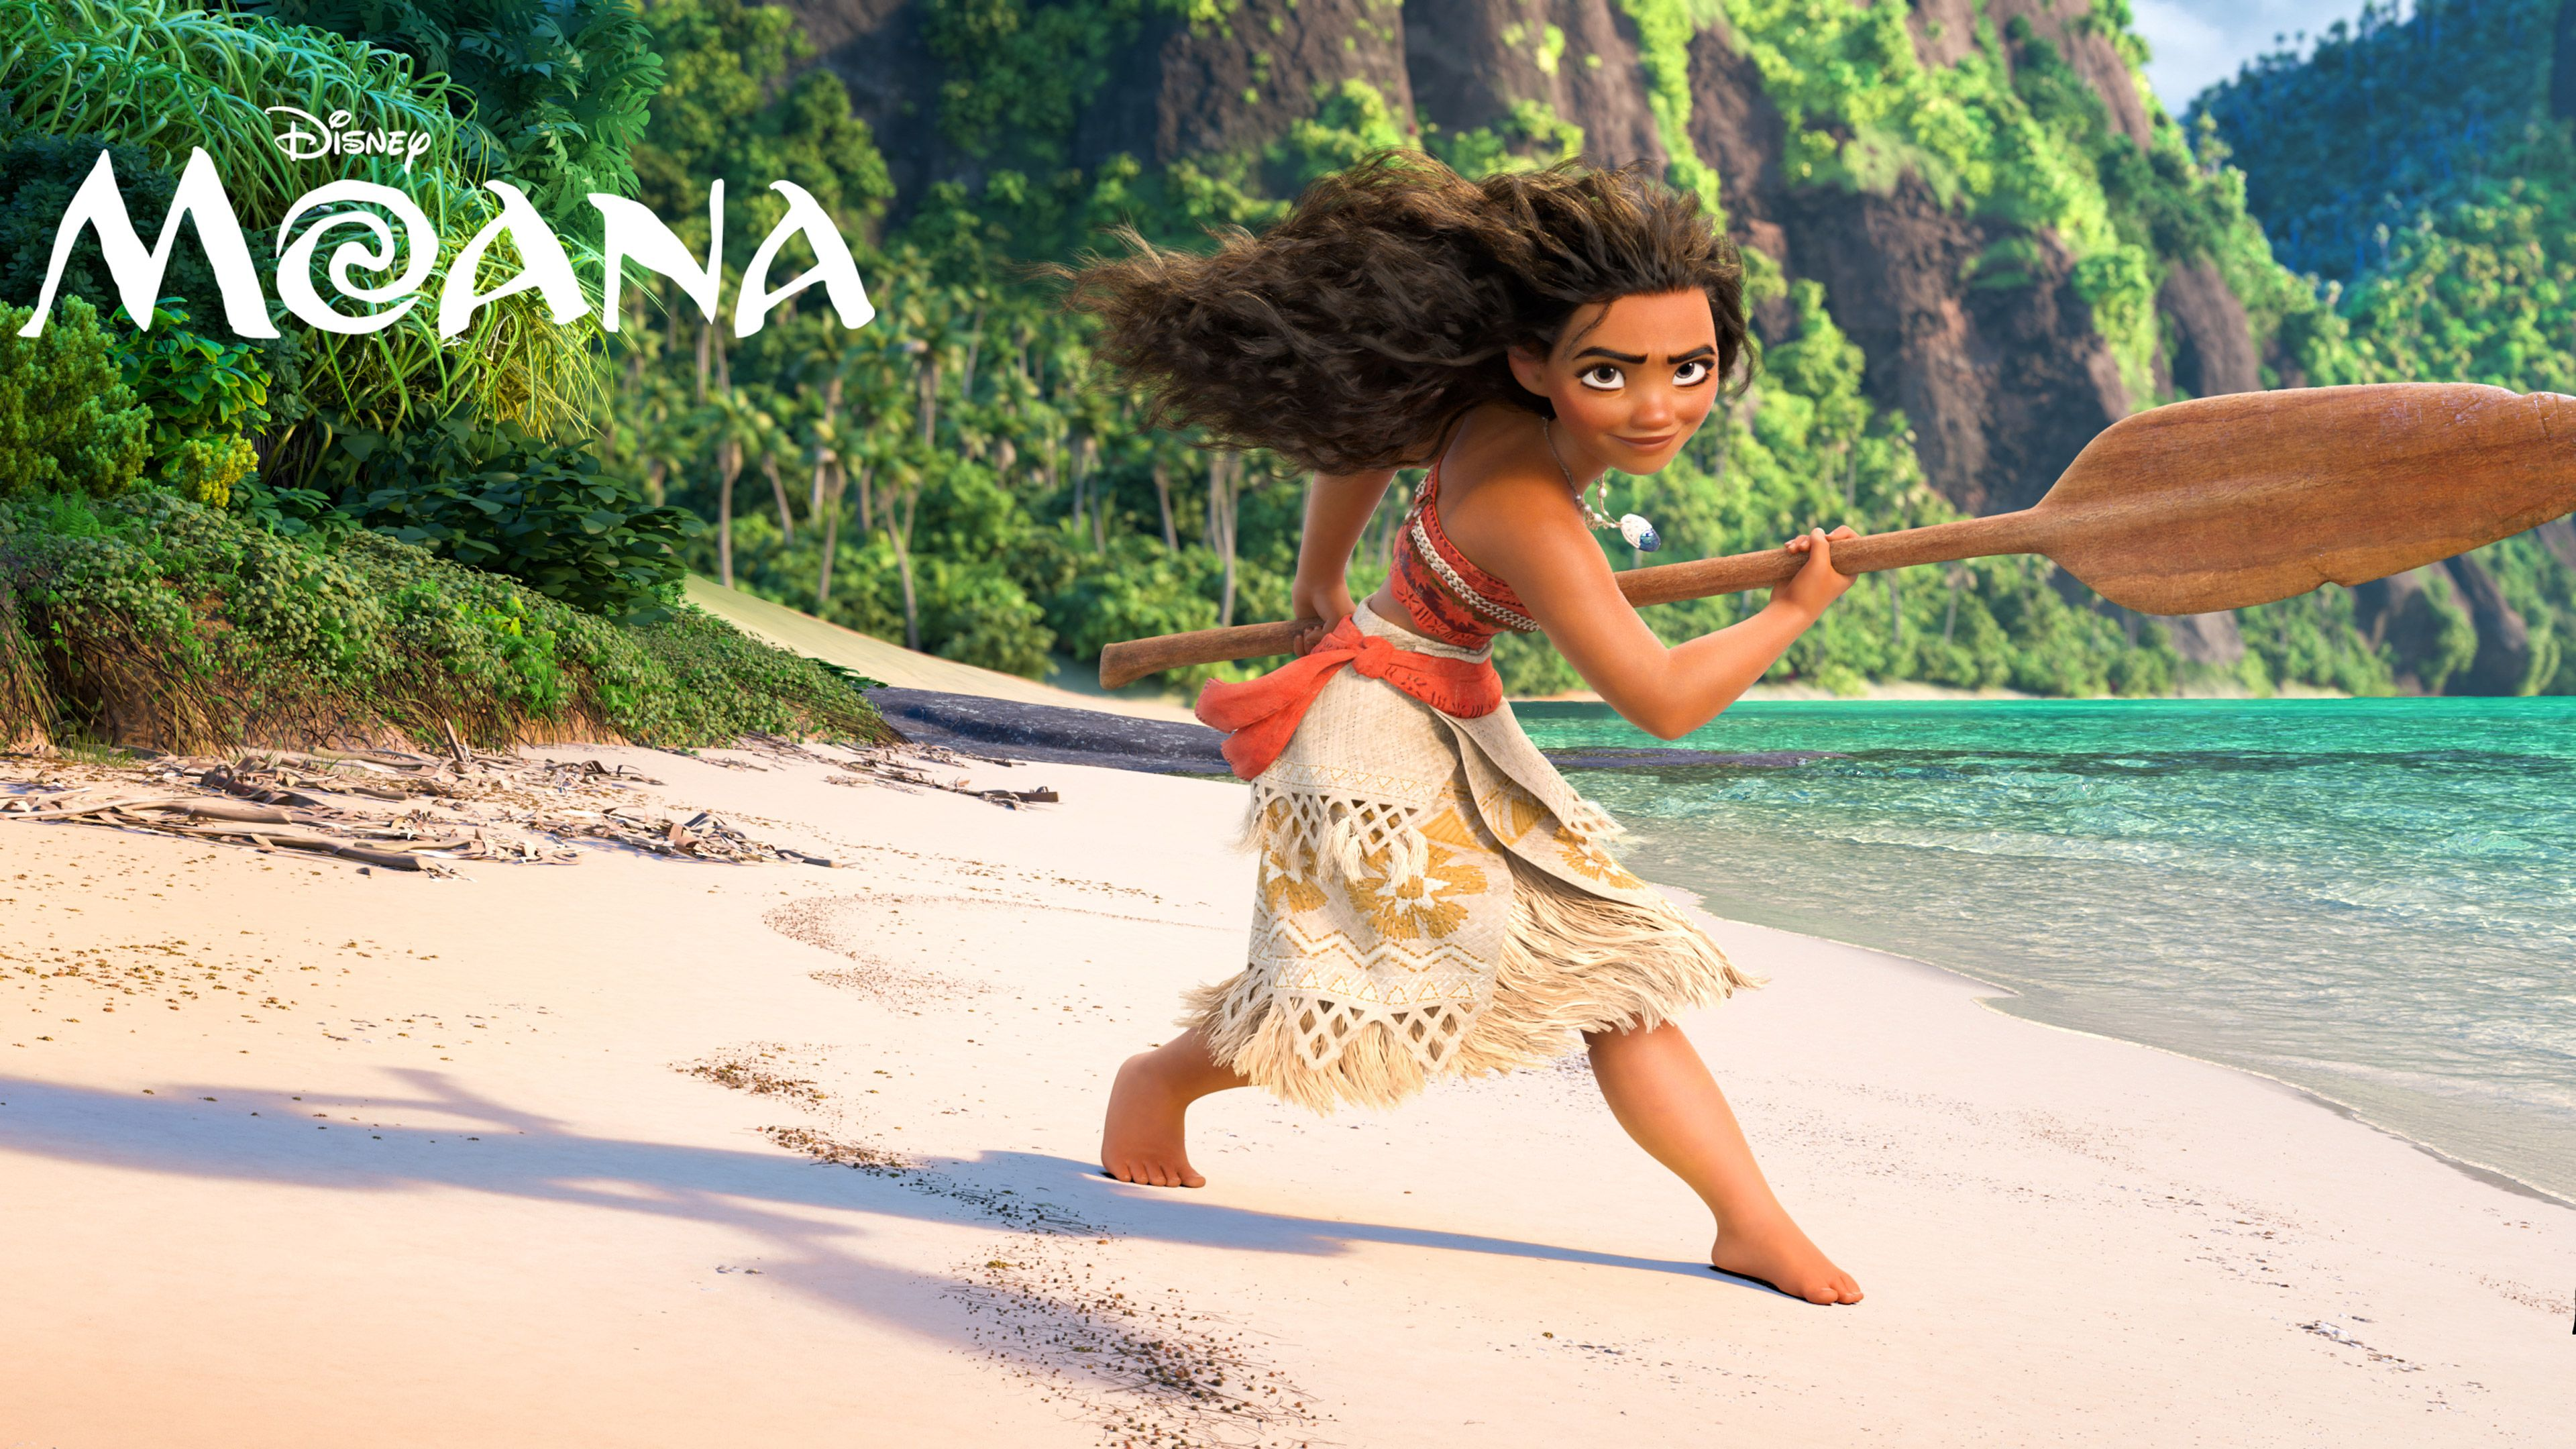 Moana 4K Wallpapers | HD Wallpapers